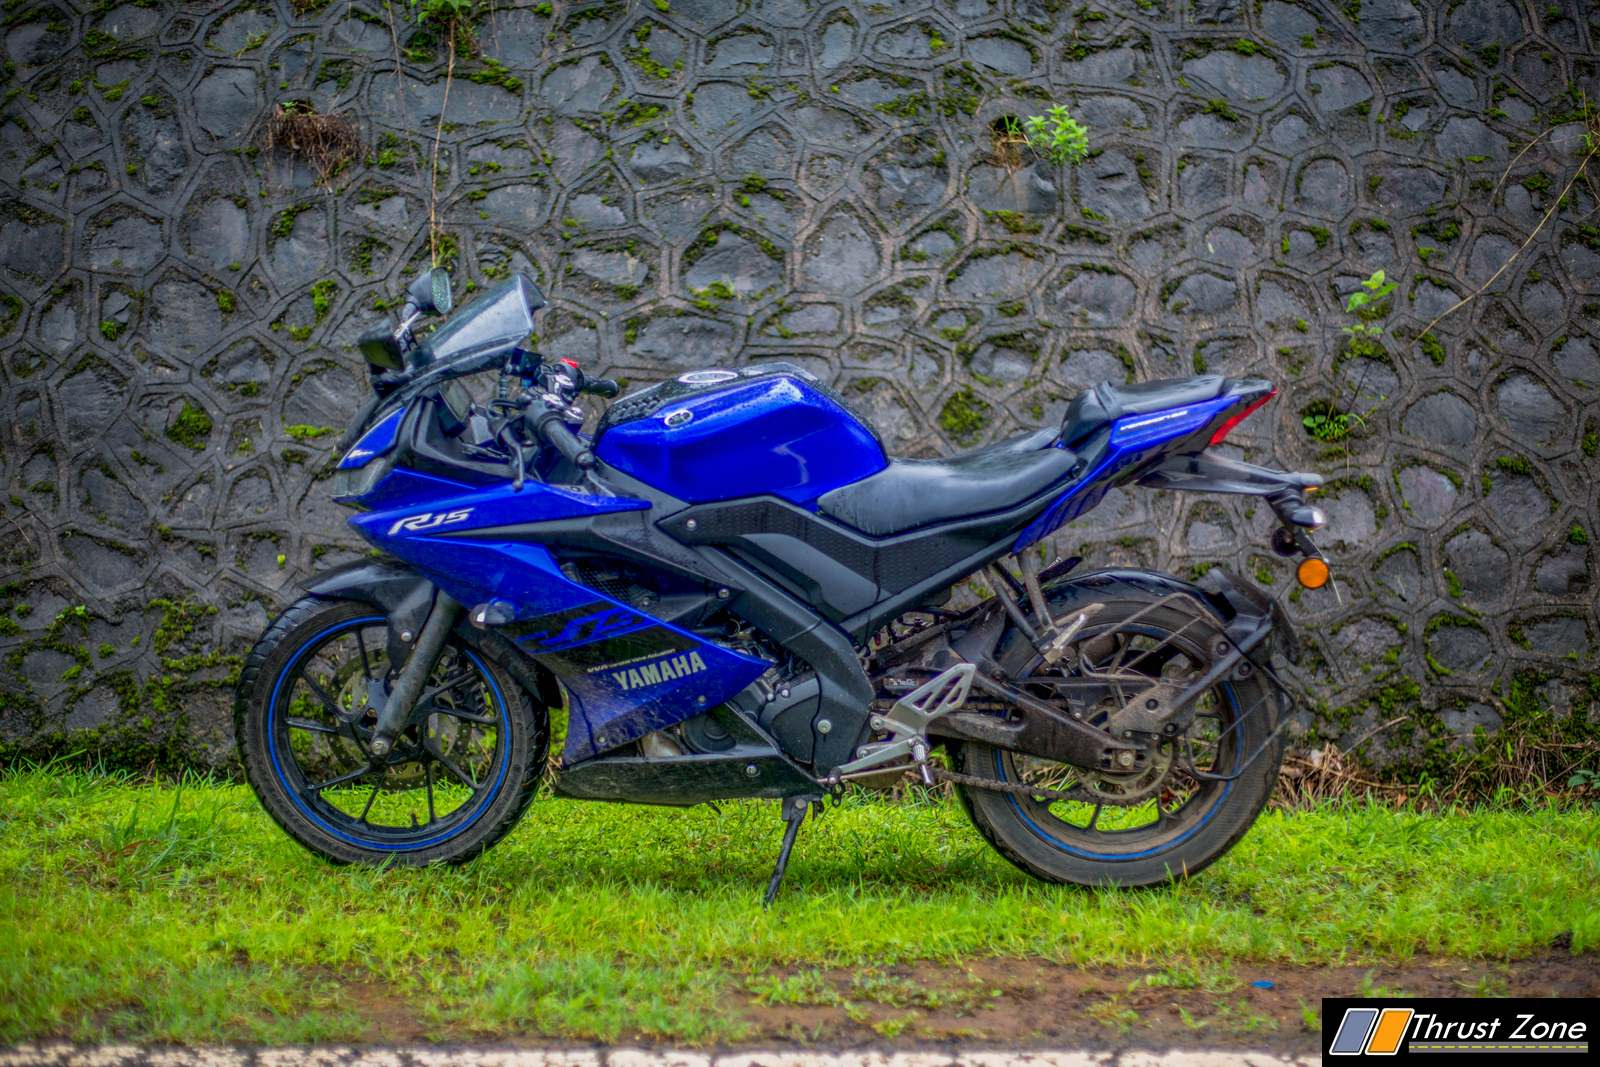 https://www.thrustzone.com/wp-content/uploads/2018/07/Yamaha-R15-V3-Review-Road-Test-20.jpg